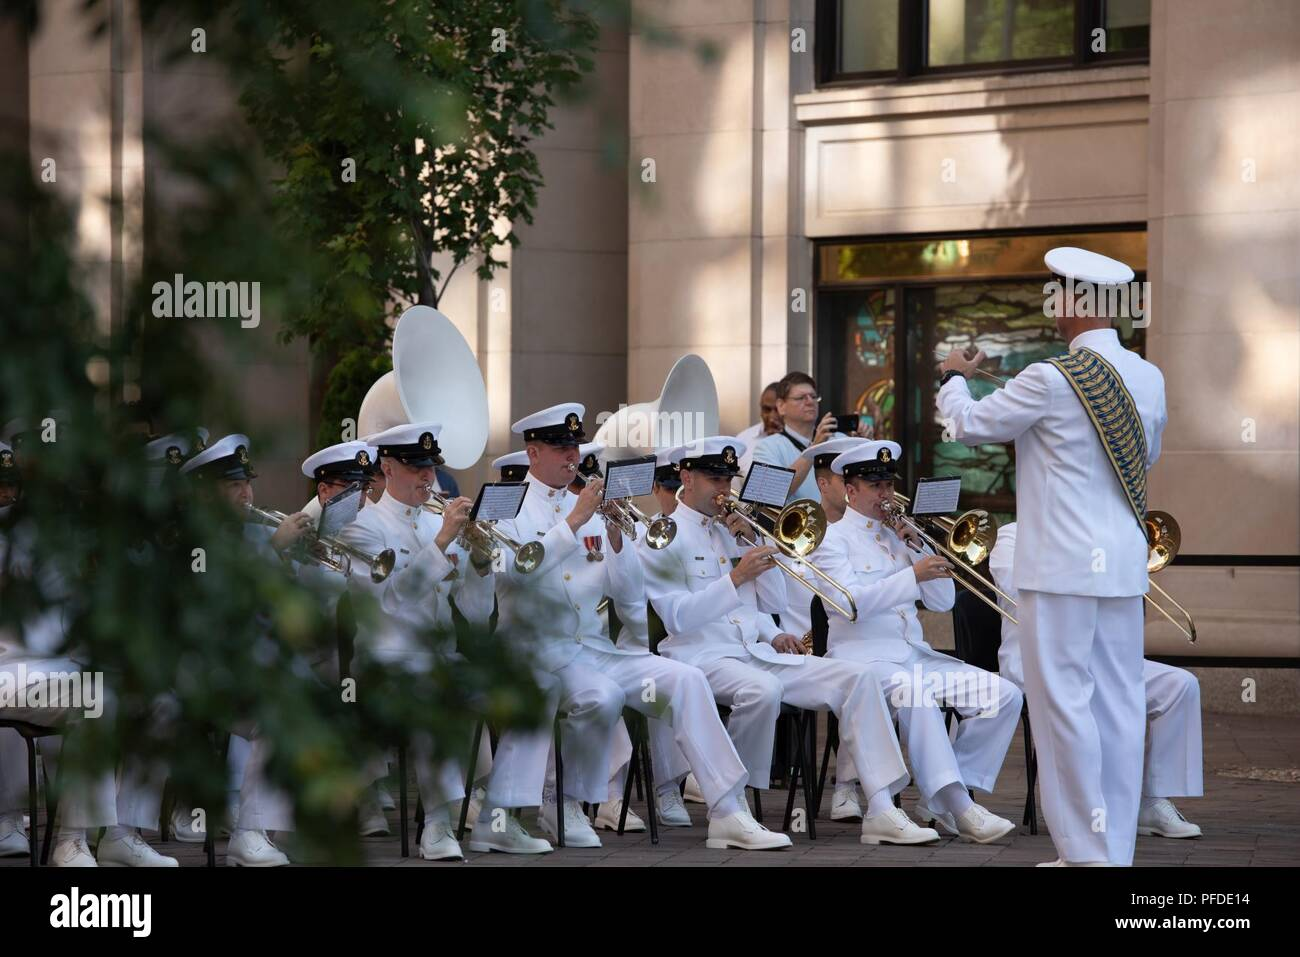 WASHINGTON (June 5, 2018) Members of the U.S. Navy Ceremonial band perform ceremonial music at the U.S. Navy Memorial in Washington, D.C., during the commemoration of the 76th anniversary of the Battle of Midway. The Battle of Midway began on June 4 in 1942 and stands as one of the U.S. Navy's most historically significant naval battles. Fought on the high seas of the Pacific more than half a century ago, this battle altered the course of the war in the Pacific and thereby shaped the outcome of world events. - Stock Image